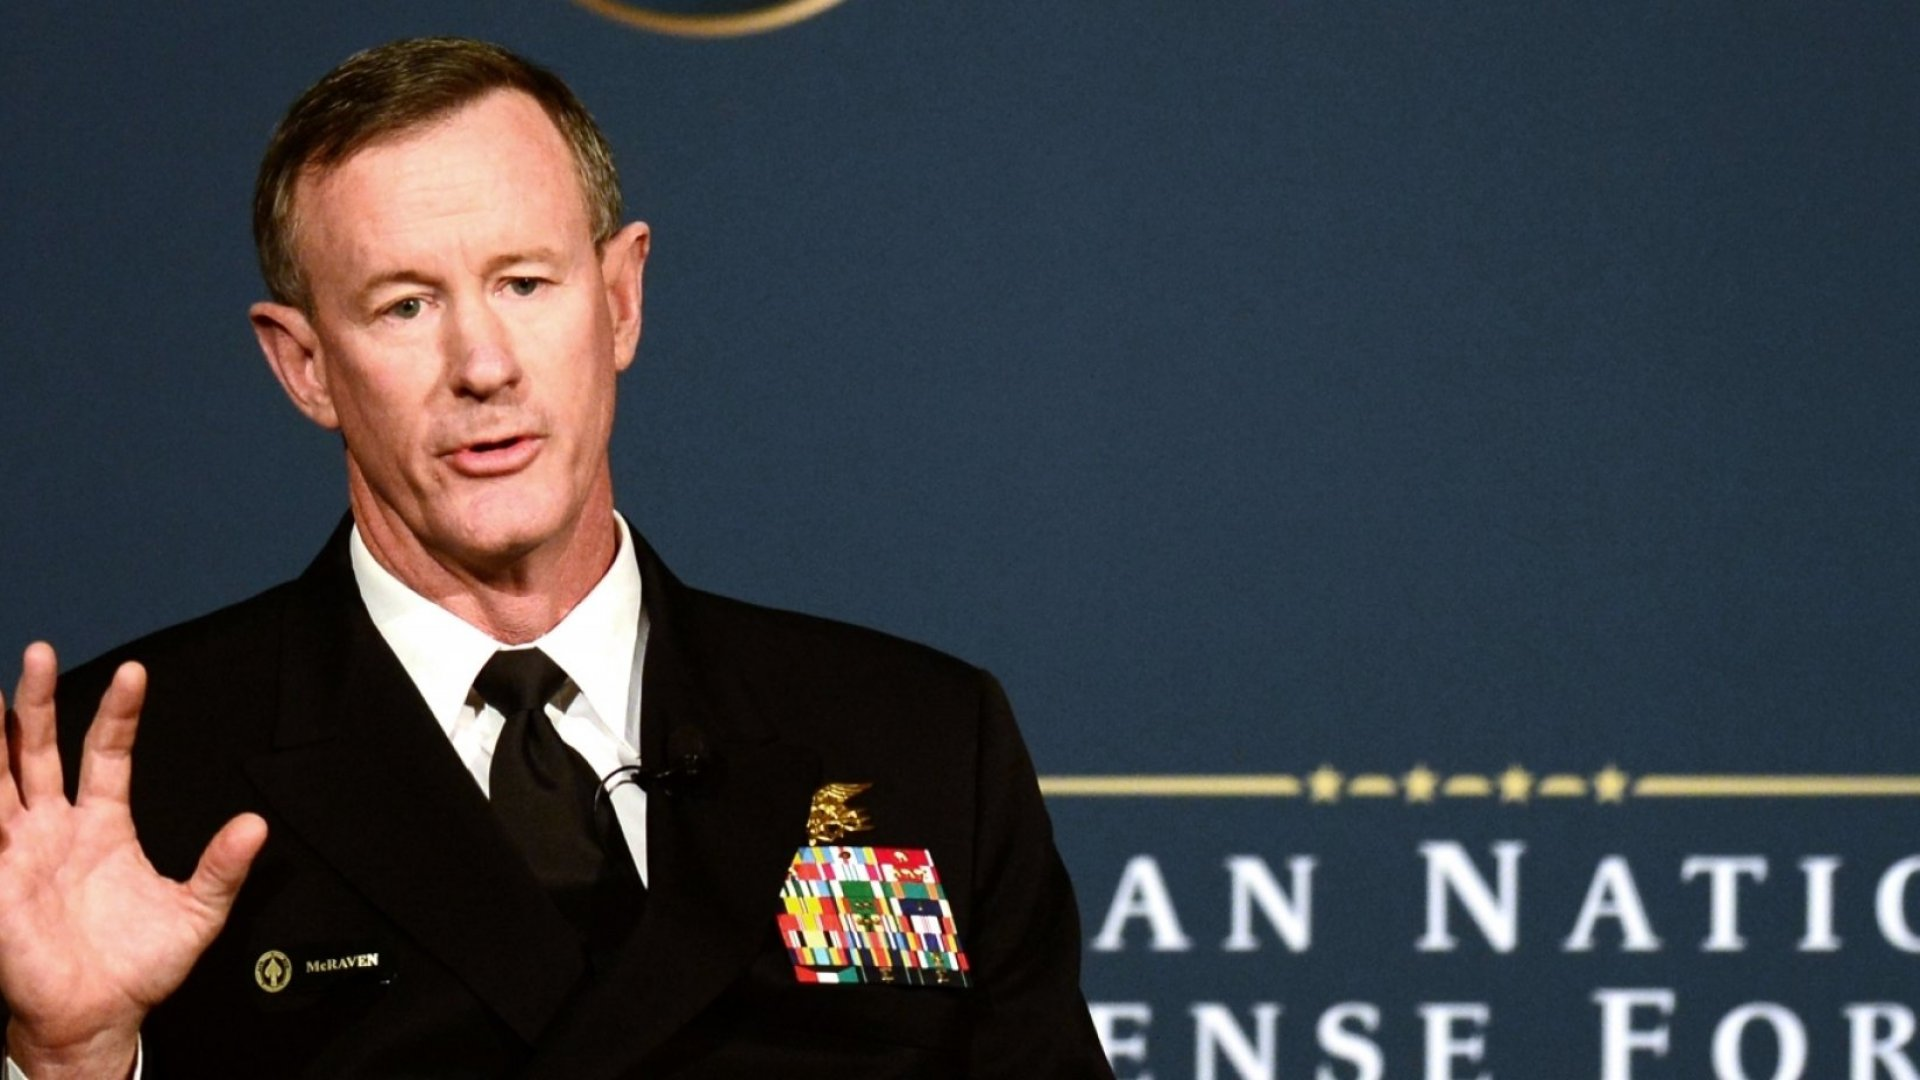 Admiral William McRaven.